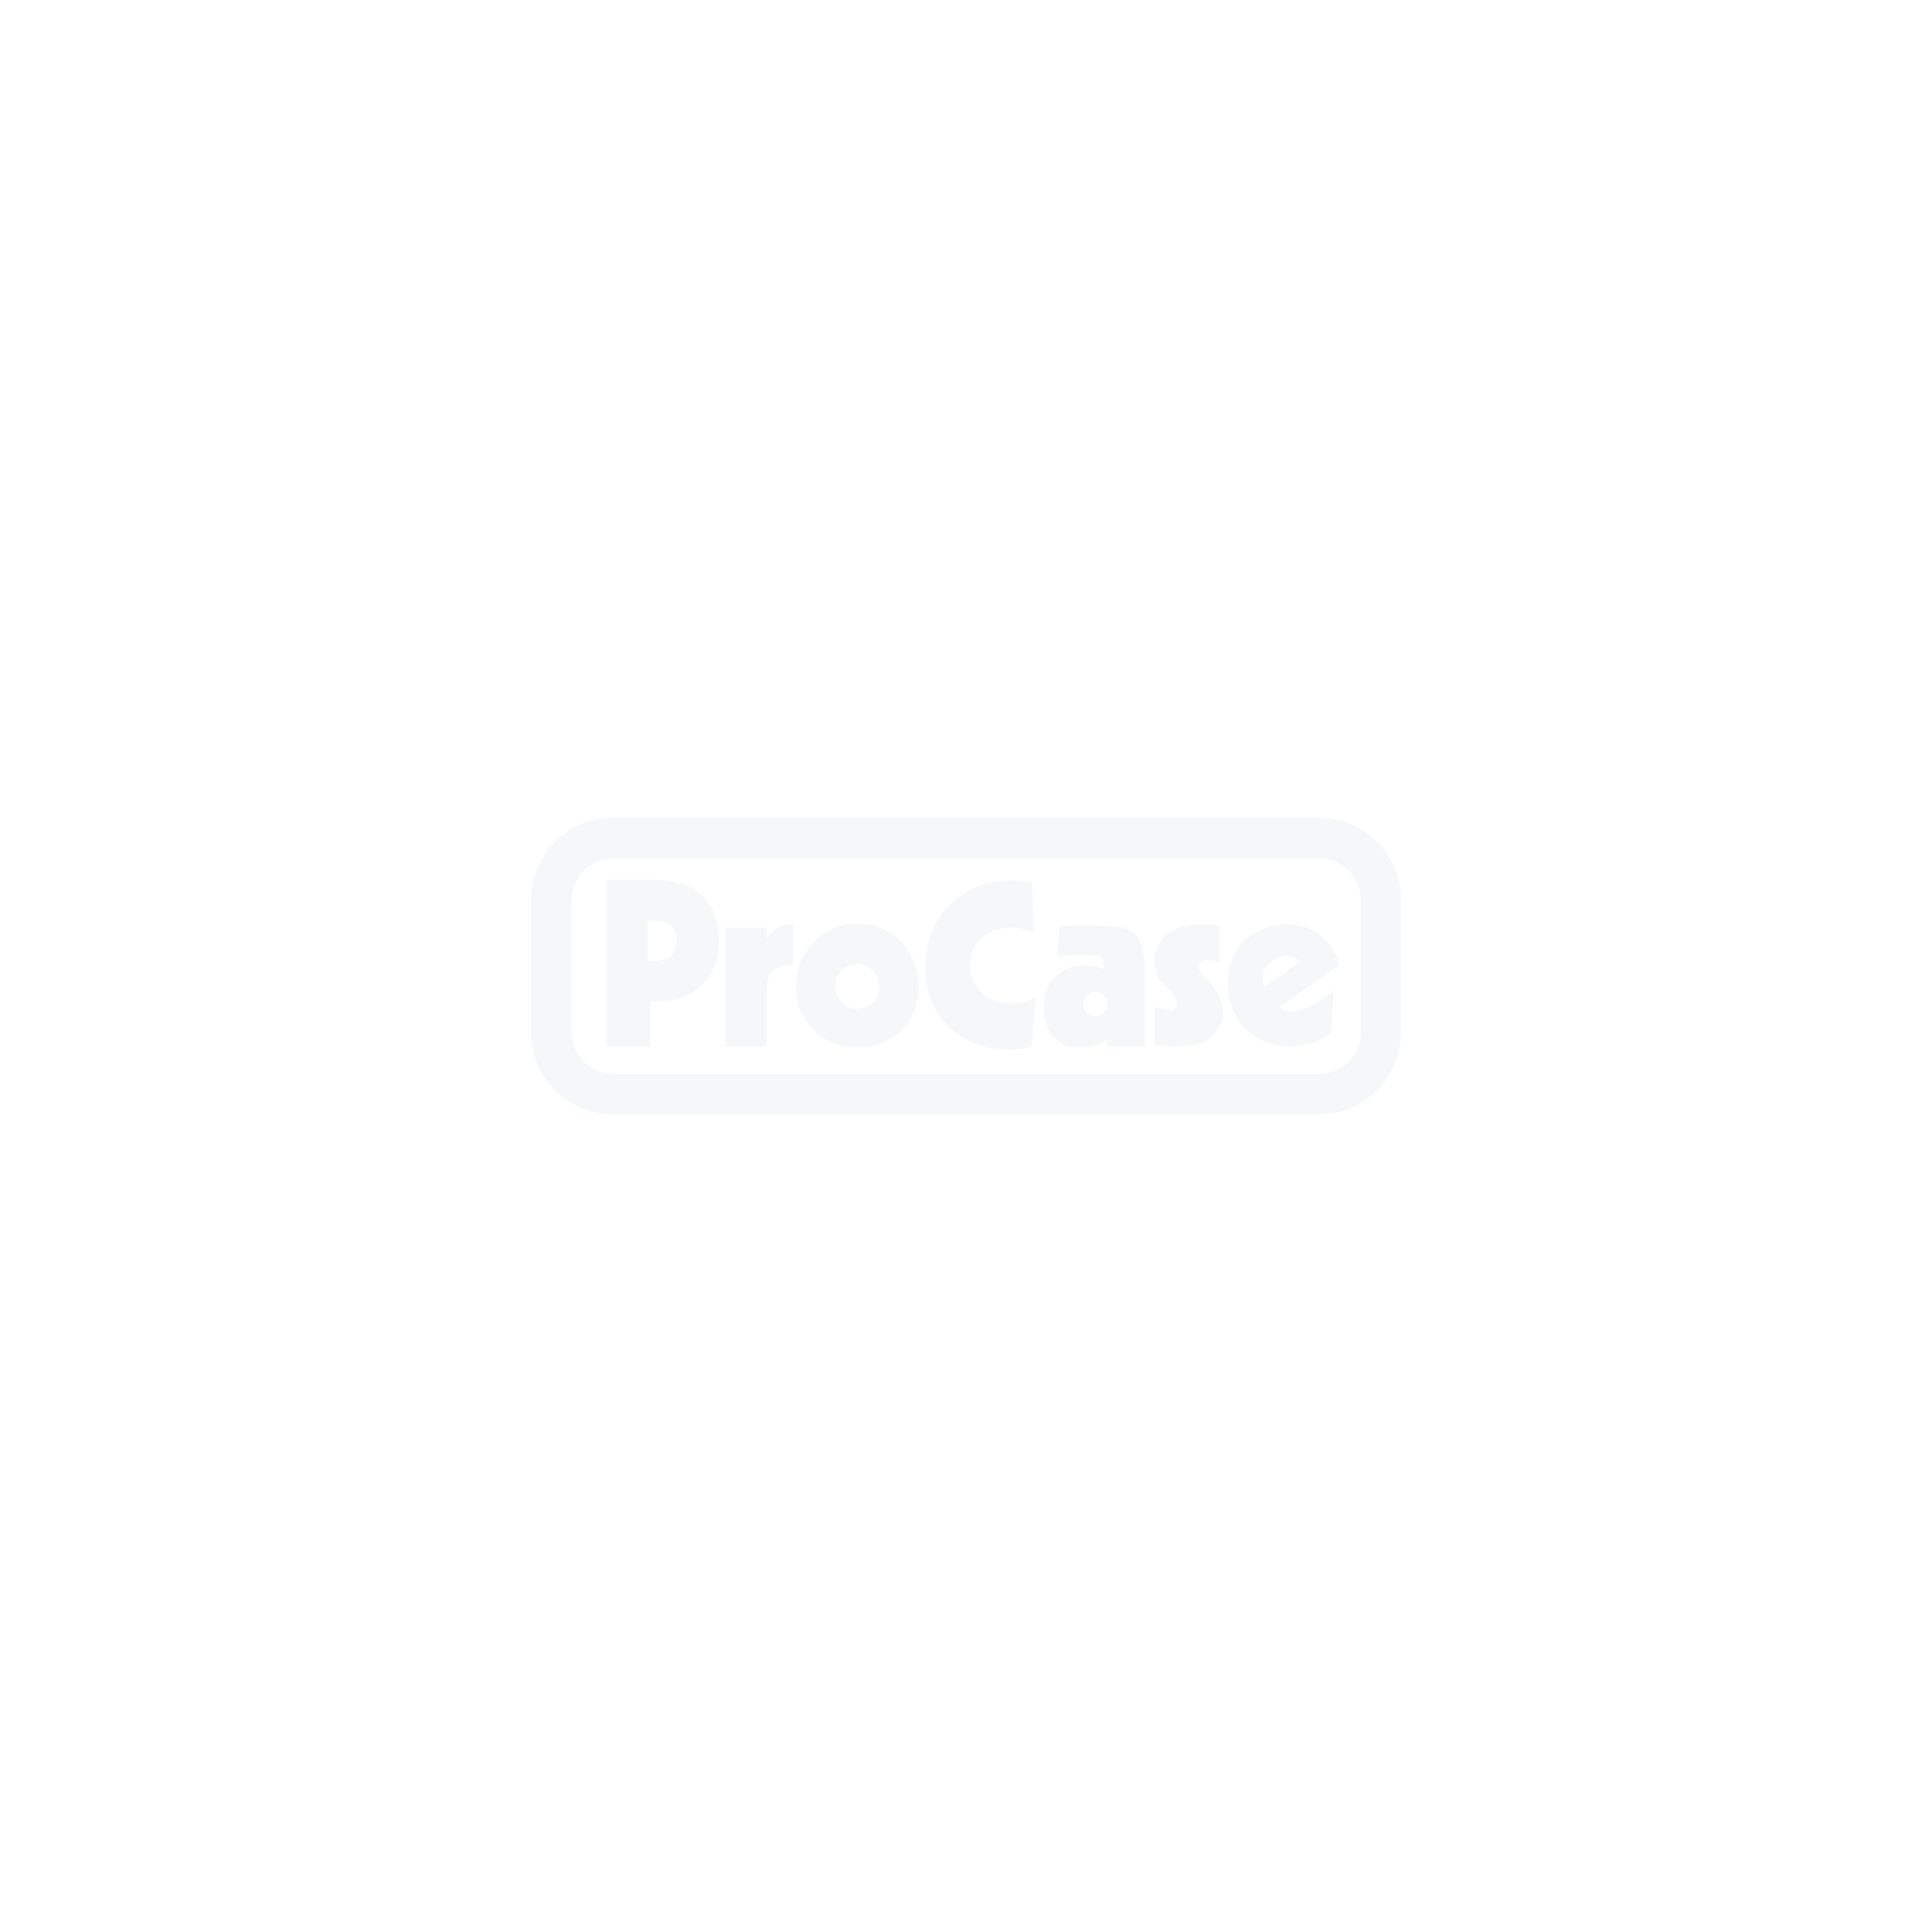 Trolly-Flightcase für Apple iMac 20""